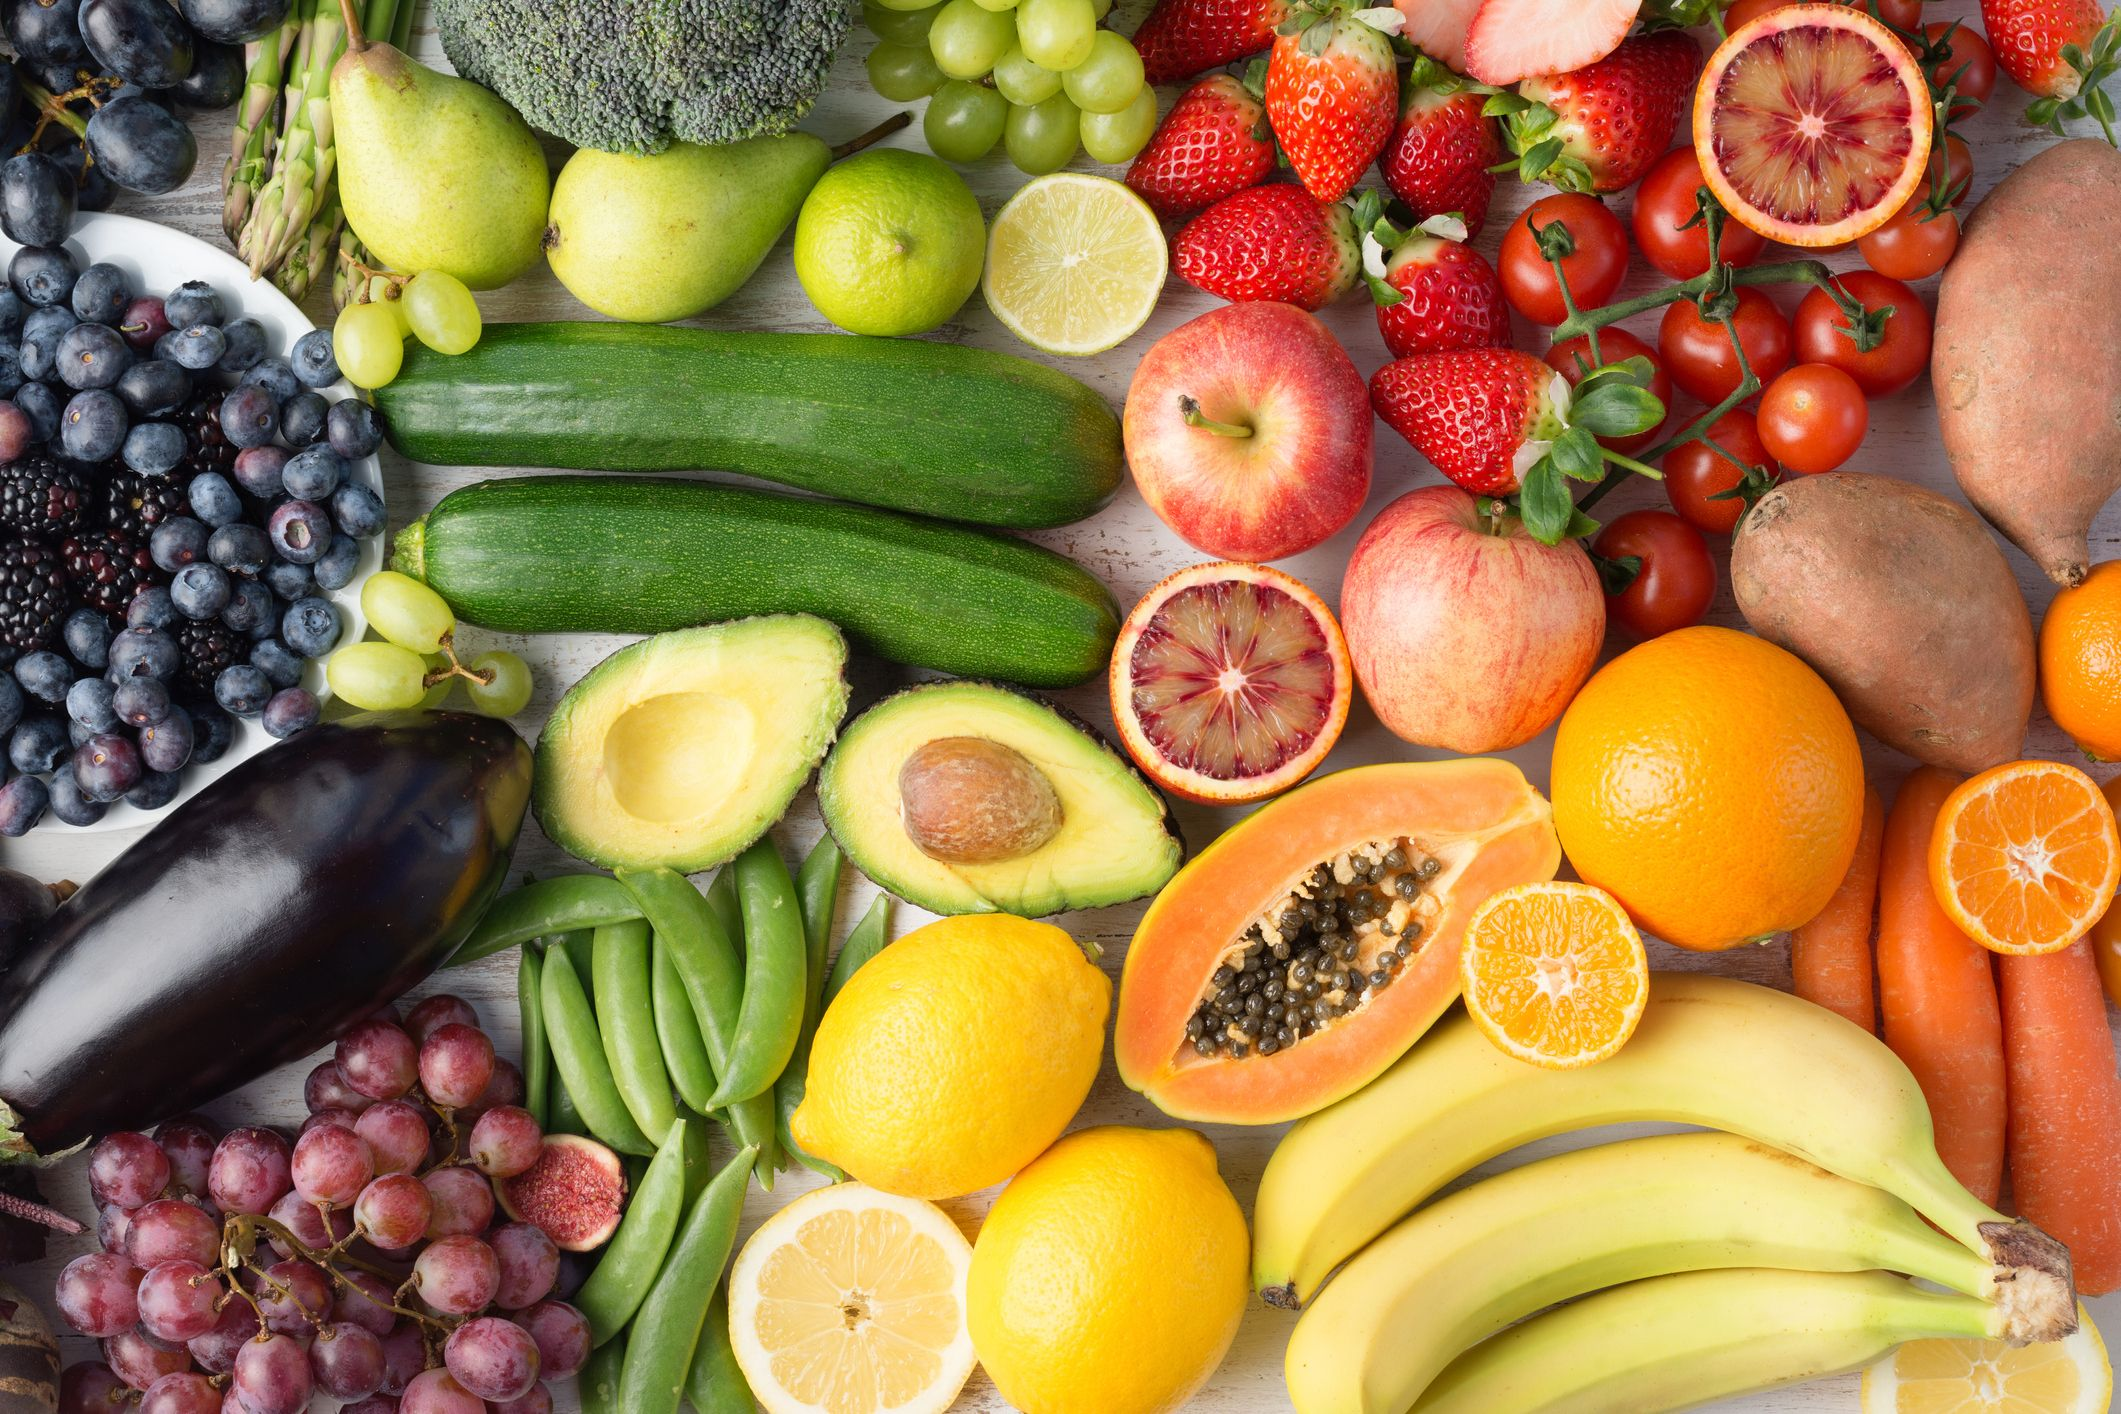 Do You Know The Paleo Diet and Paleolithic Diet?